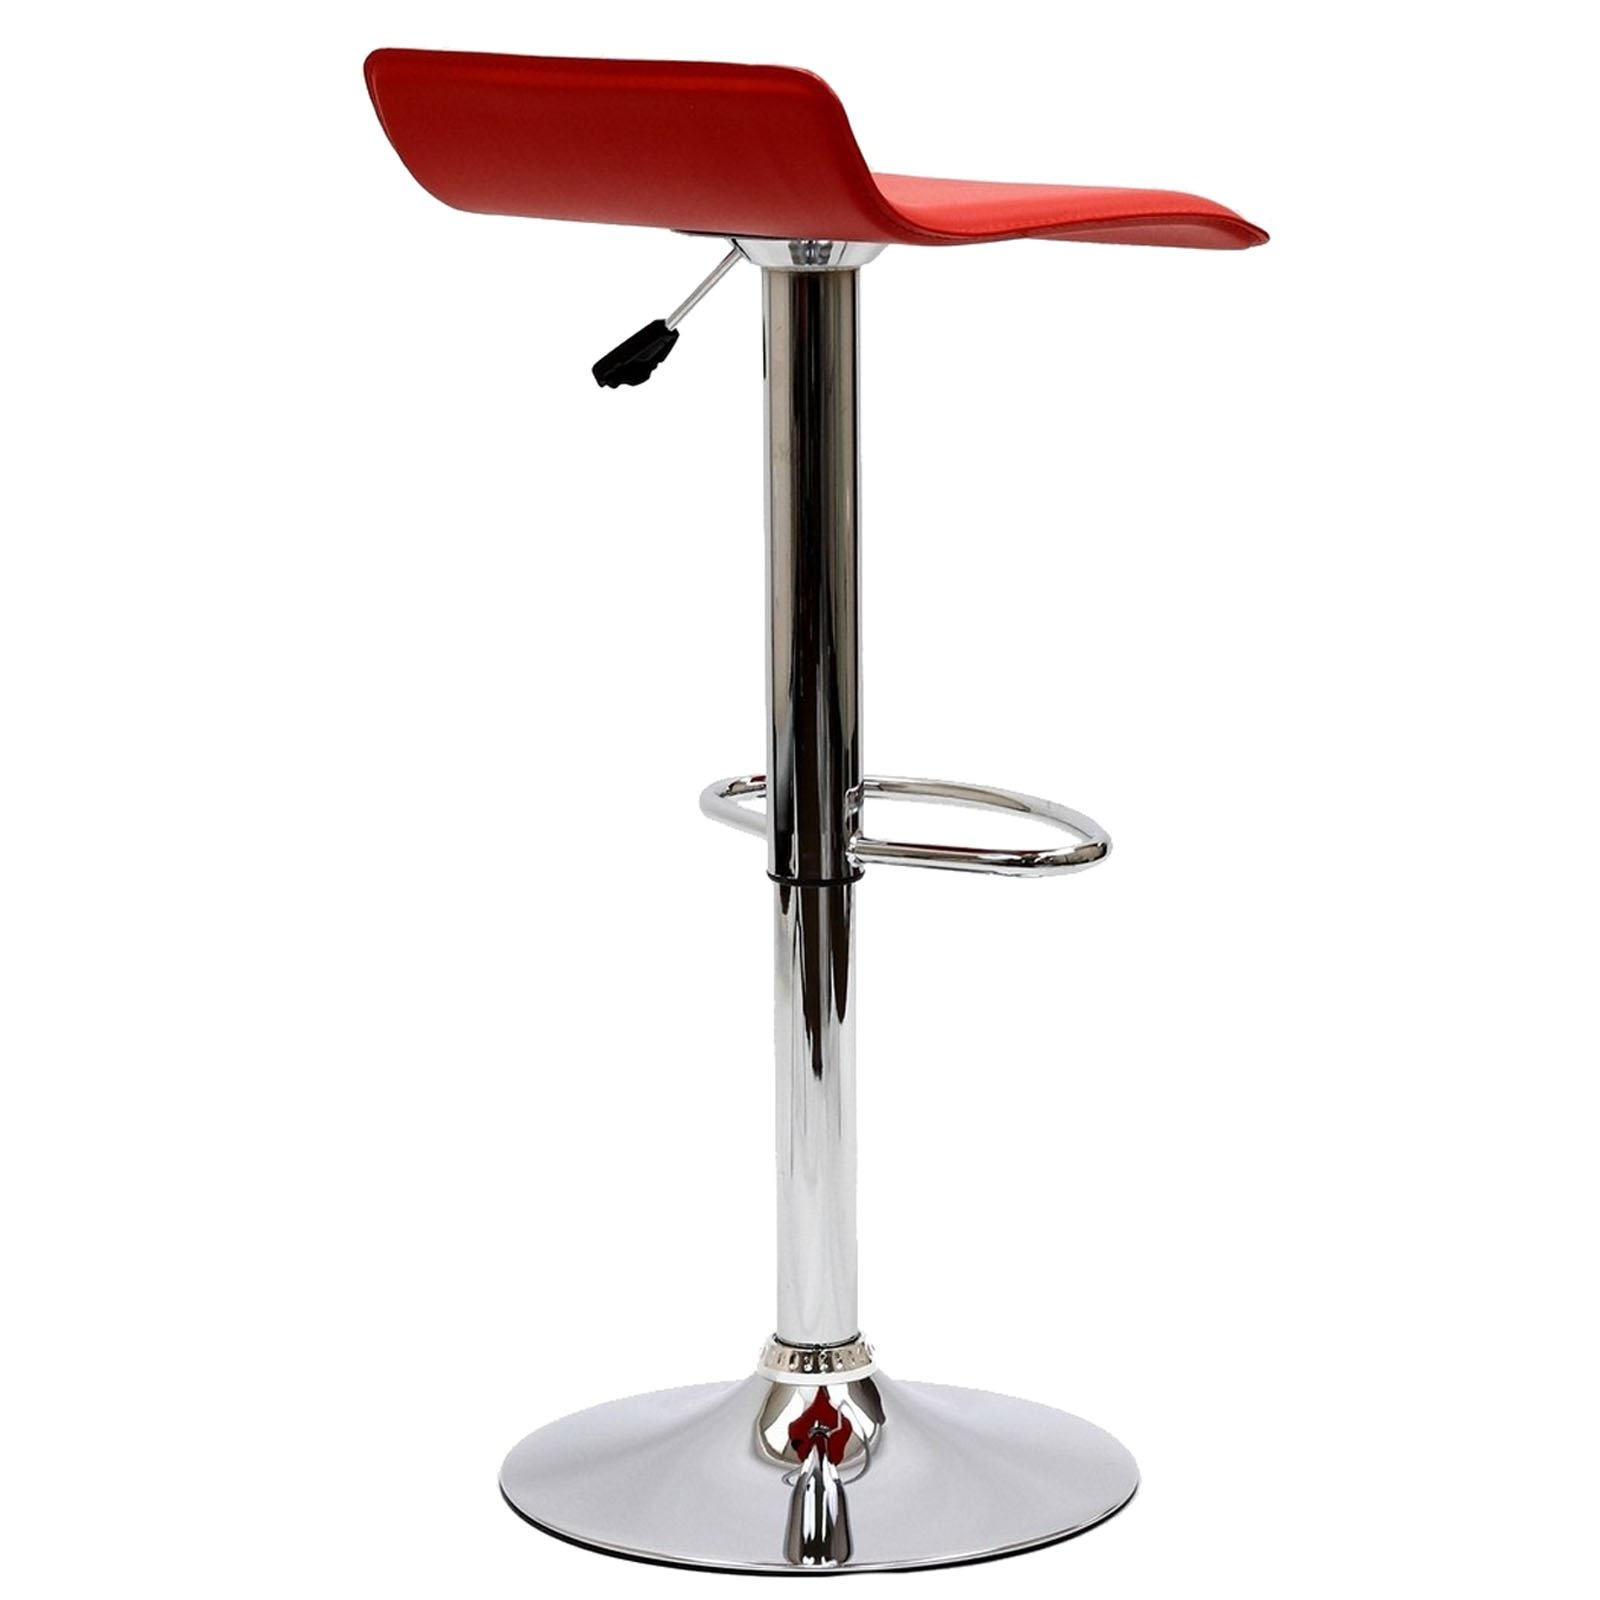 Modway Gloria Retro Modern Faux Leather Bar Stools in Red by Modway (Image #6)